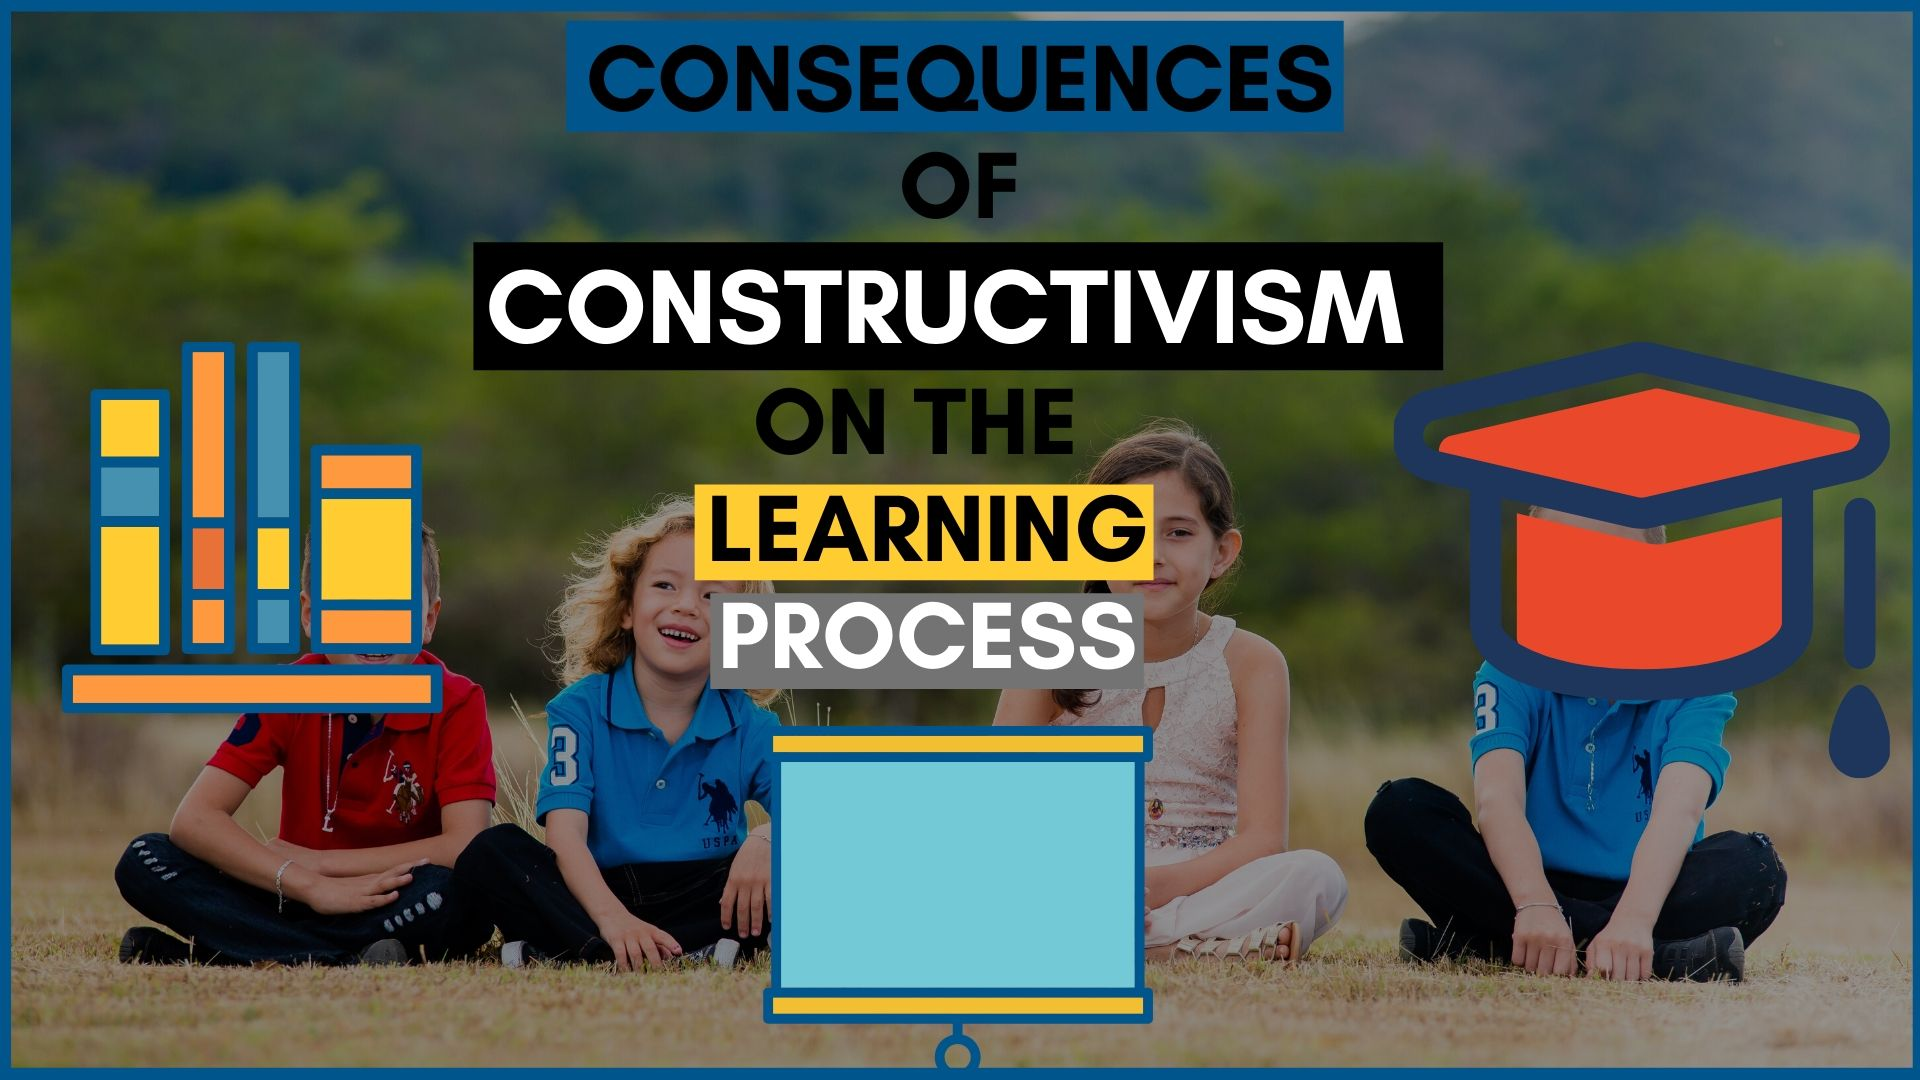 CONSTRUCTIVISM ON THE LEARNING PROCESS